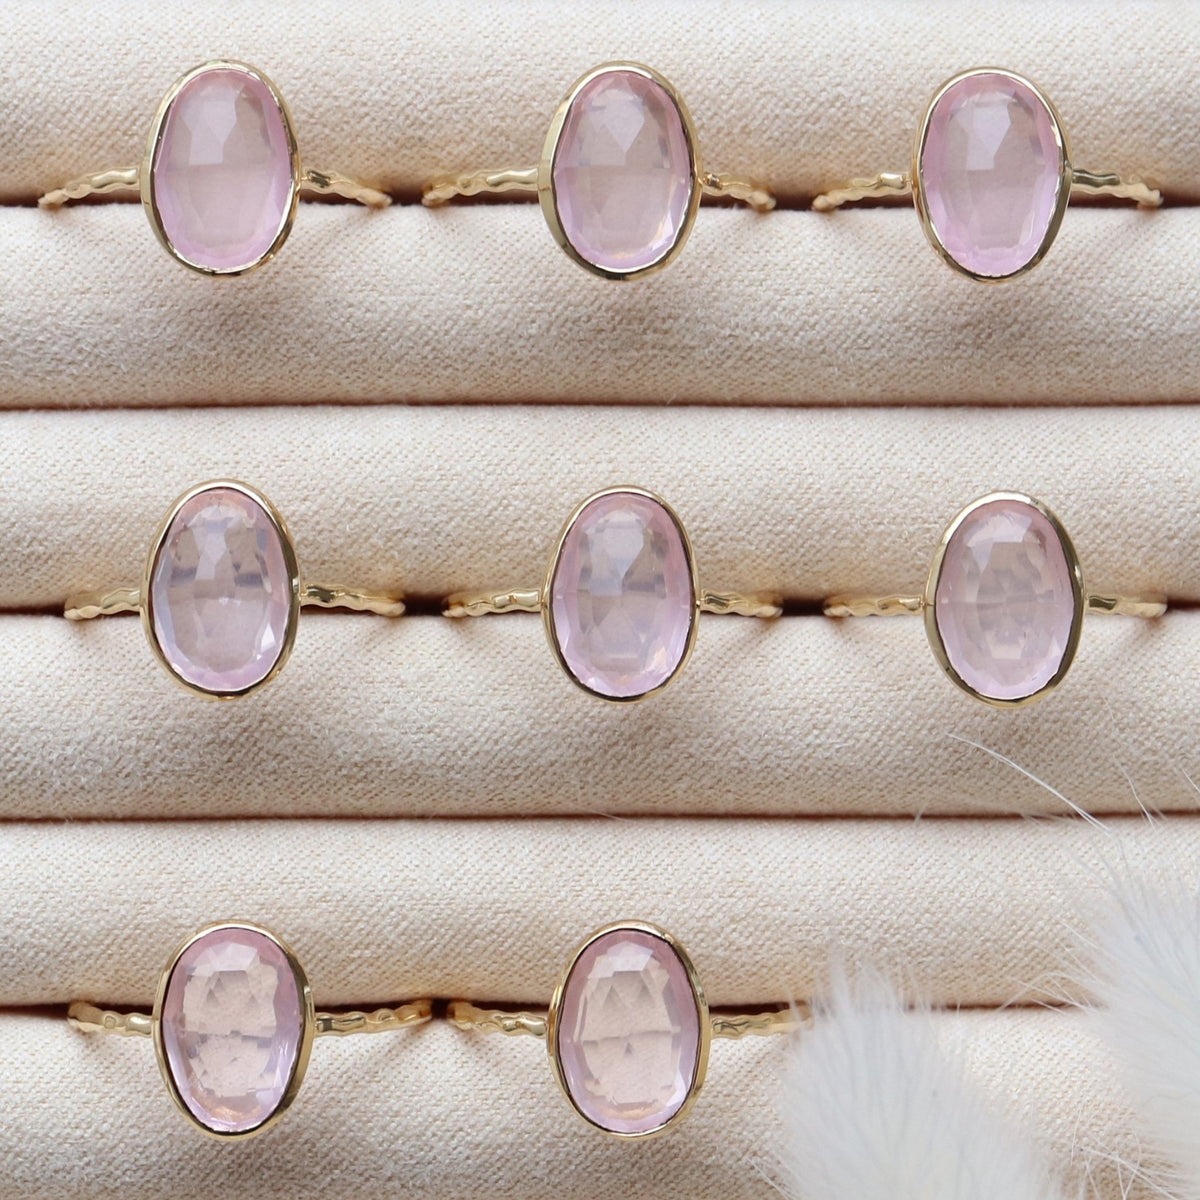 PROTECT OVAL RING - PINK QUARTZ & GOLD - SO PRETTY CARA COTTER